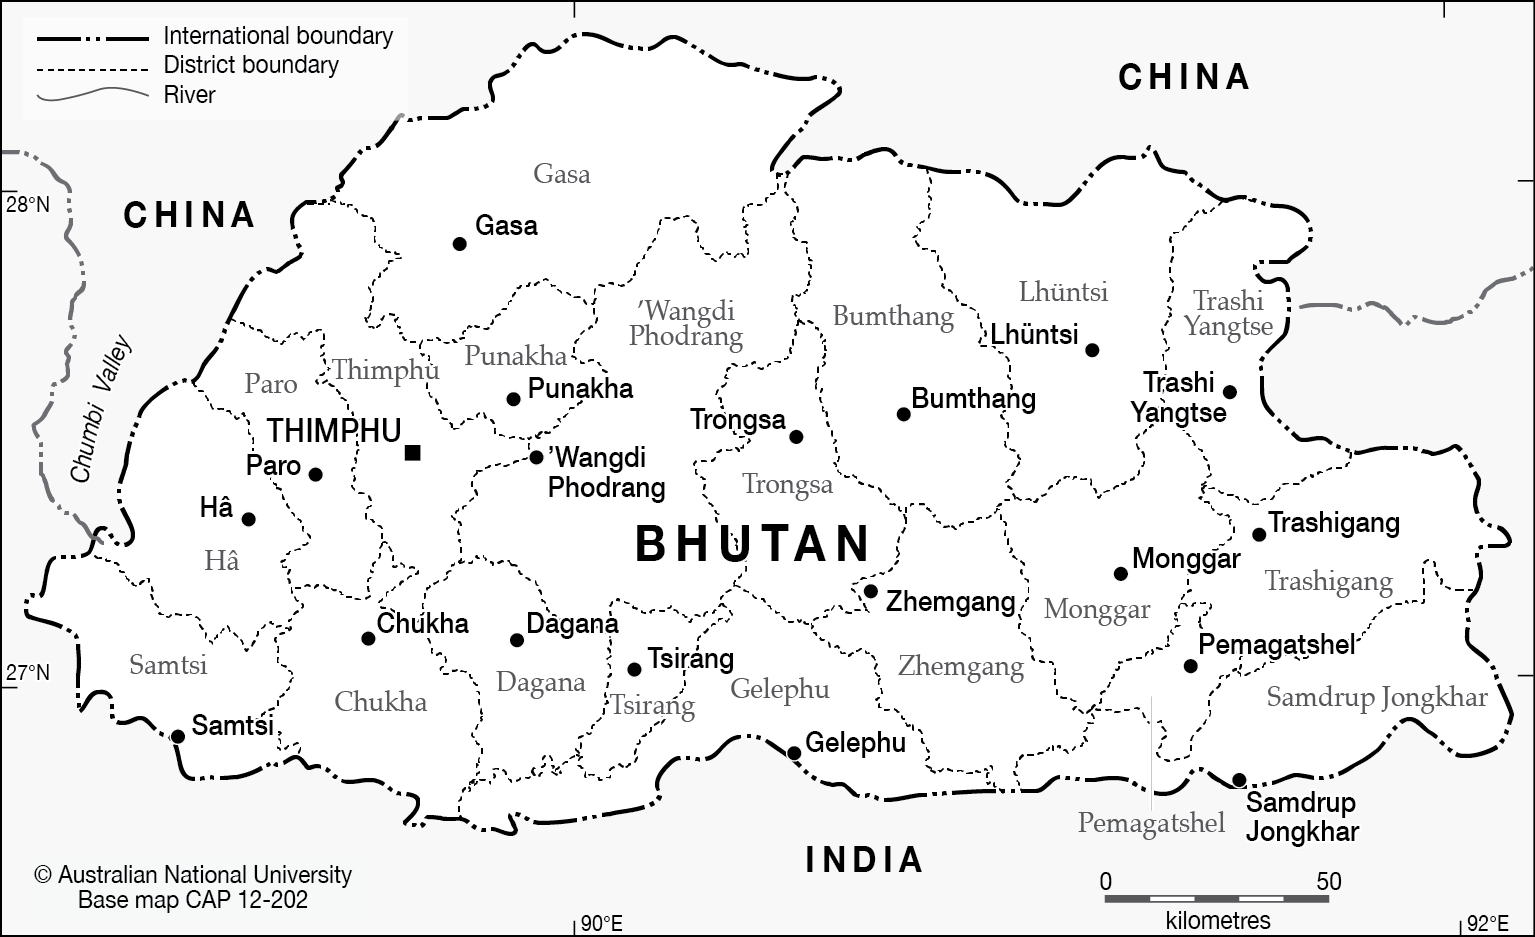 Bhutan base cartogis services maps online anu kb elevation map png 188 mb gumiabroncs Gallery